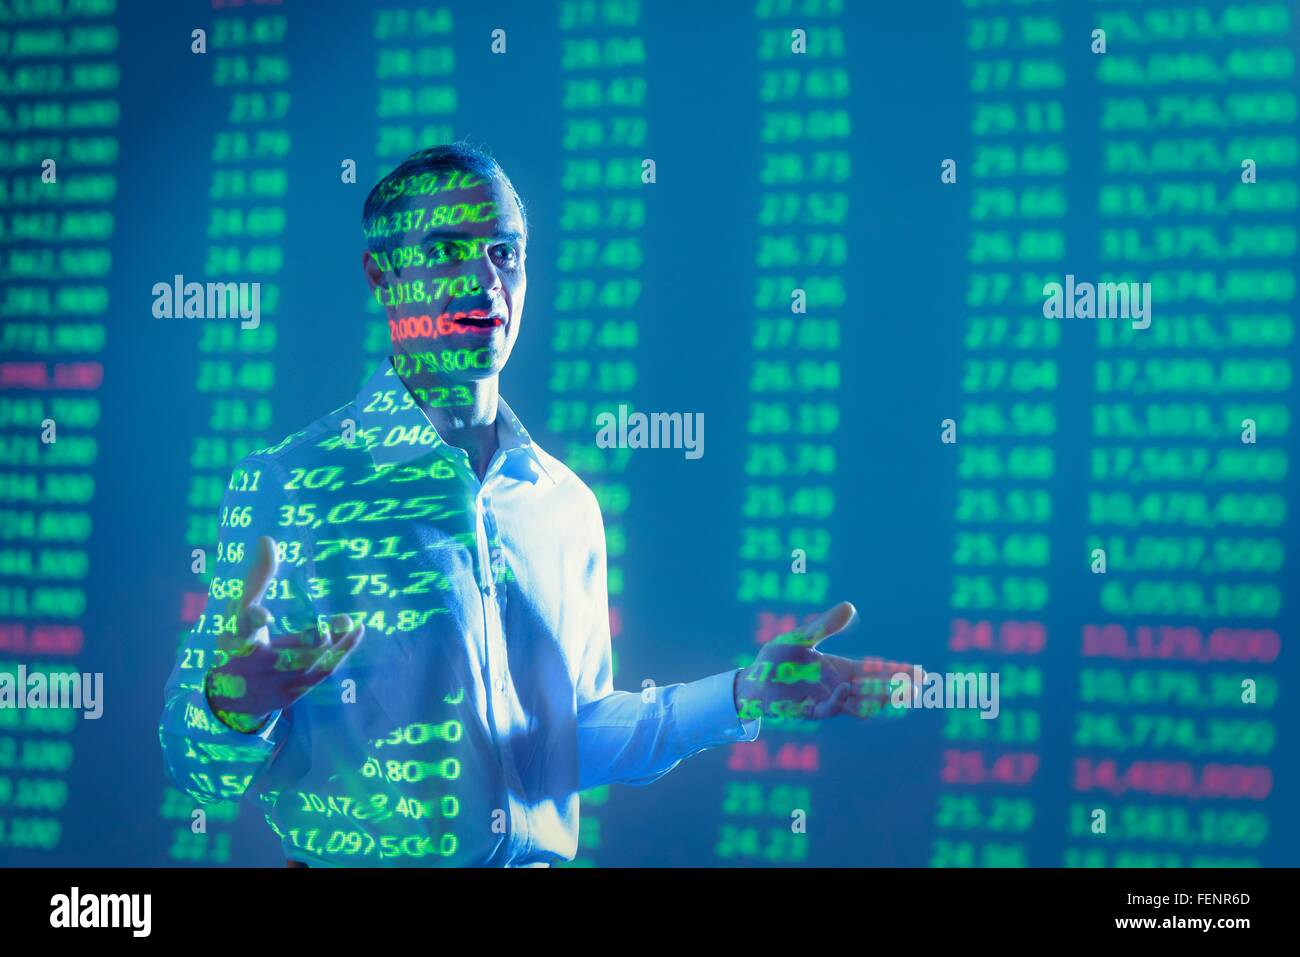 Businessman making presentation with projected financial data - Stock Image